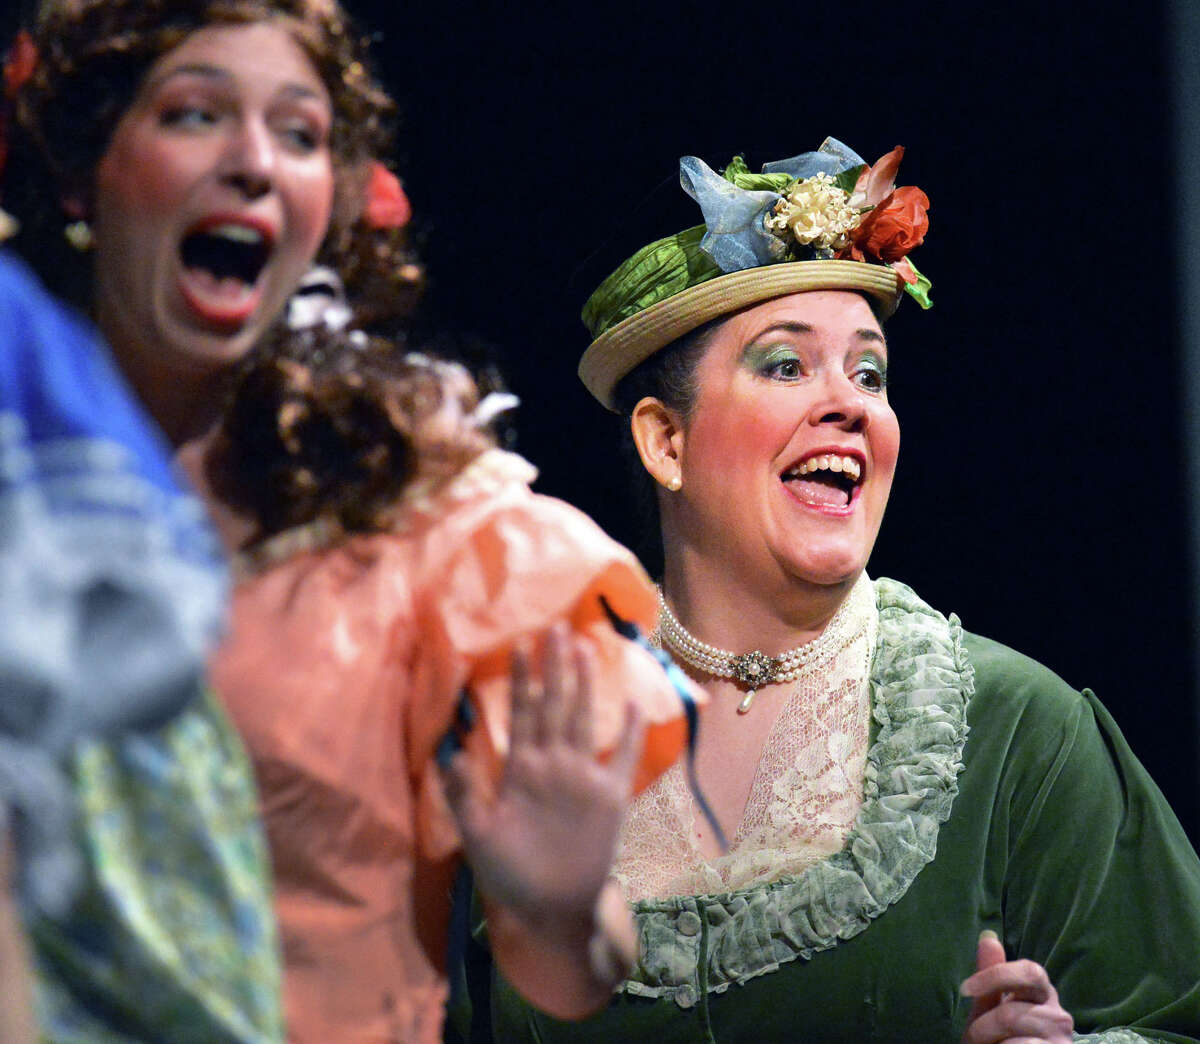 At right, Stamford resident Wendy Falconer as Kate during the Troupers Light Opera production of